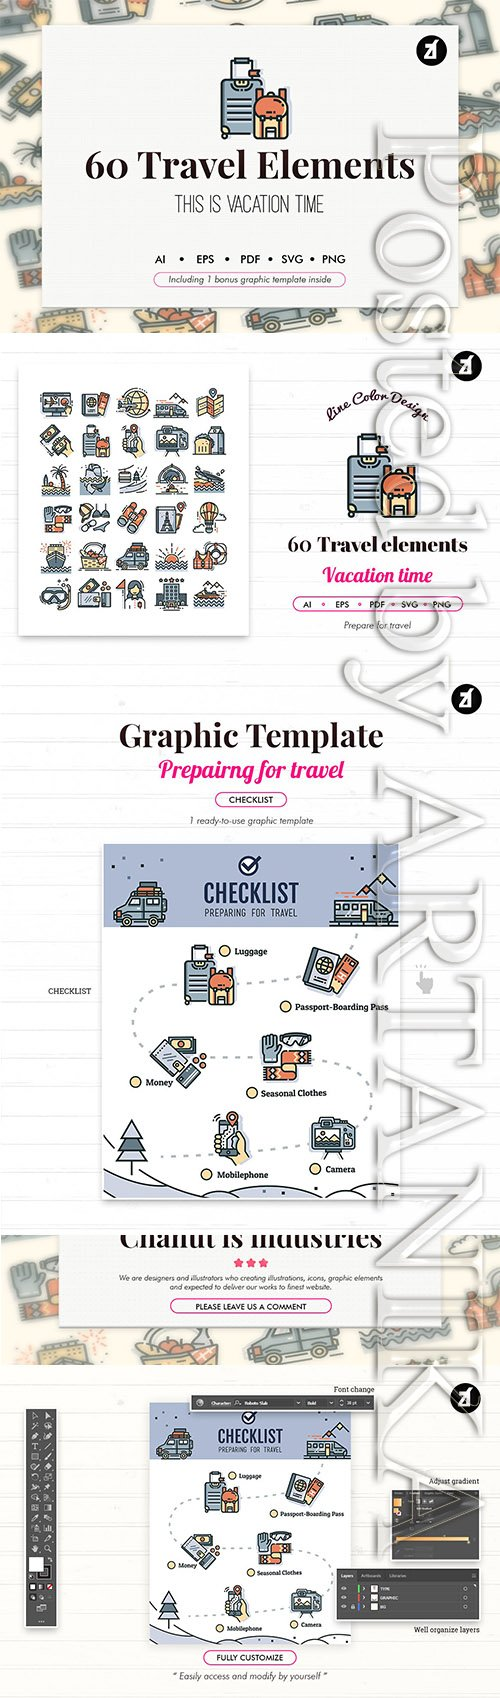 60 Travel elements with bonus graphic template